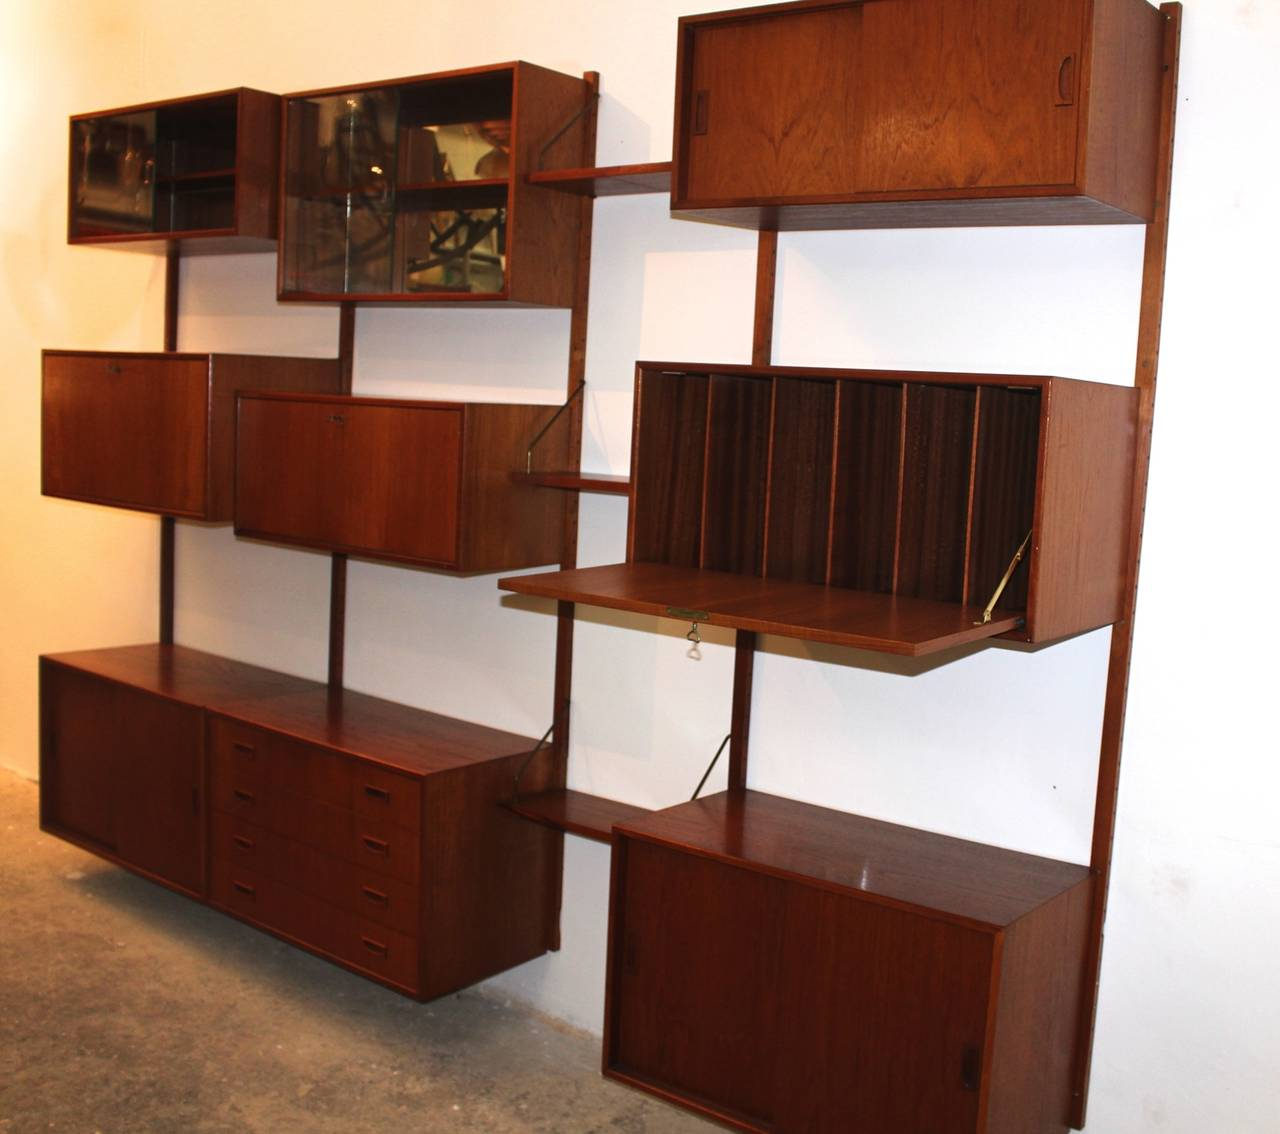 Danish Scandinavian Modern Teak Vintage Wall System by Poul Cadovius, Denmark, 1960s For Sale